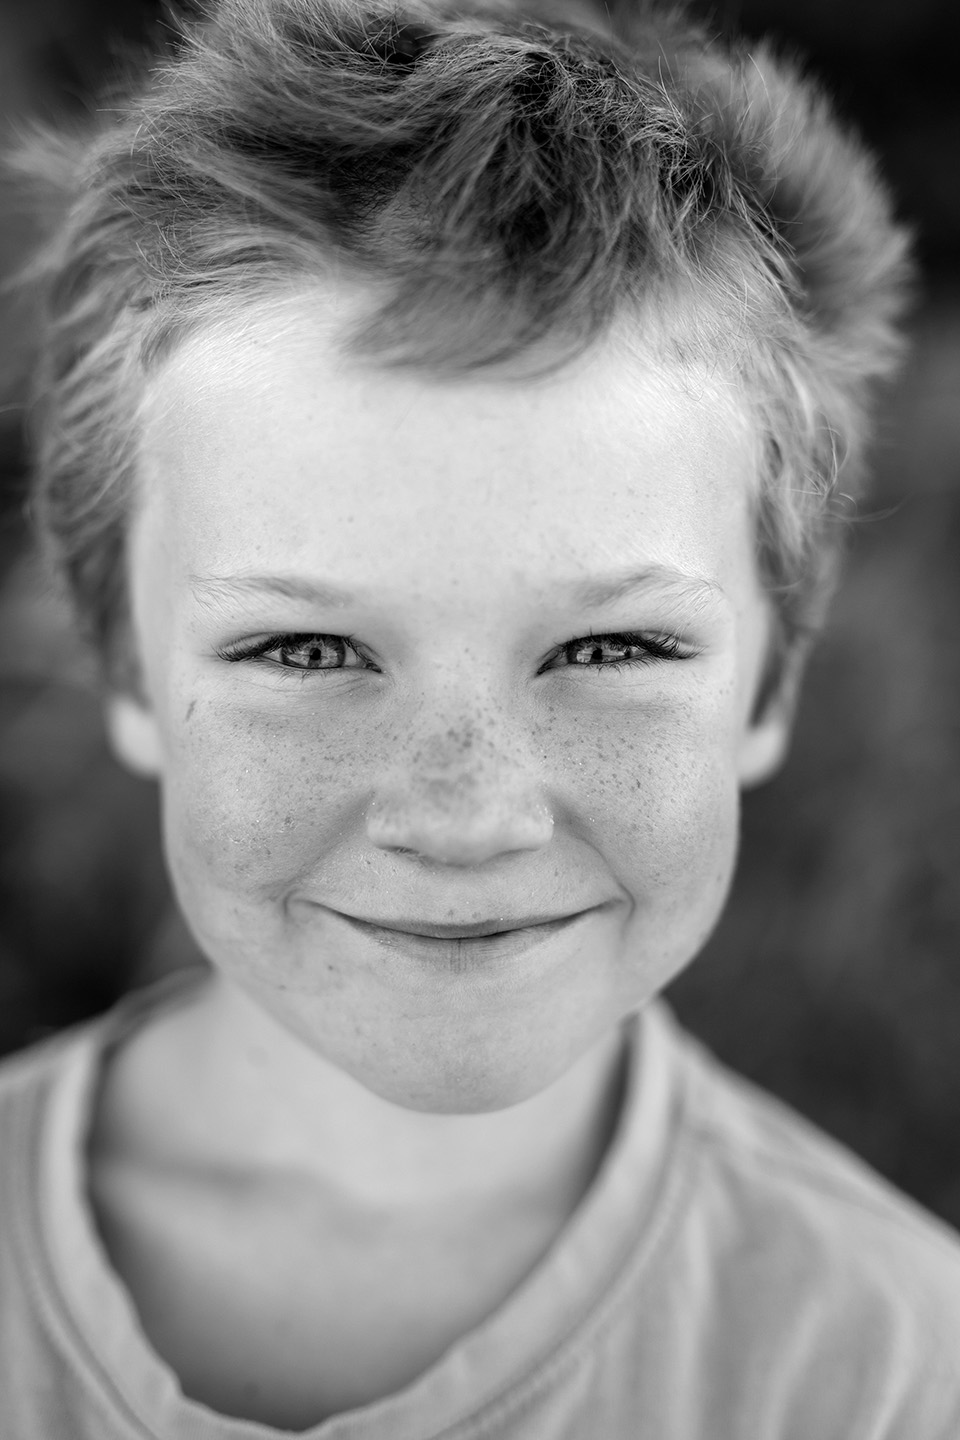 Little boy smiling, b&w photo, Alice Payne photography